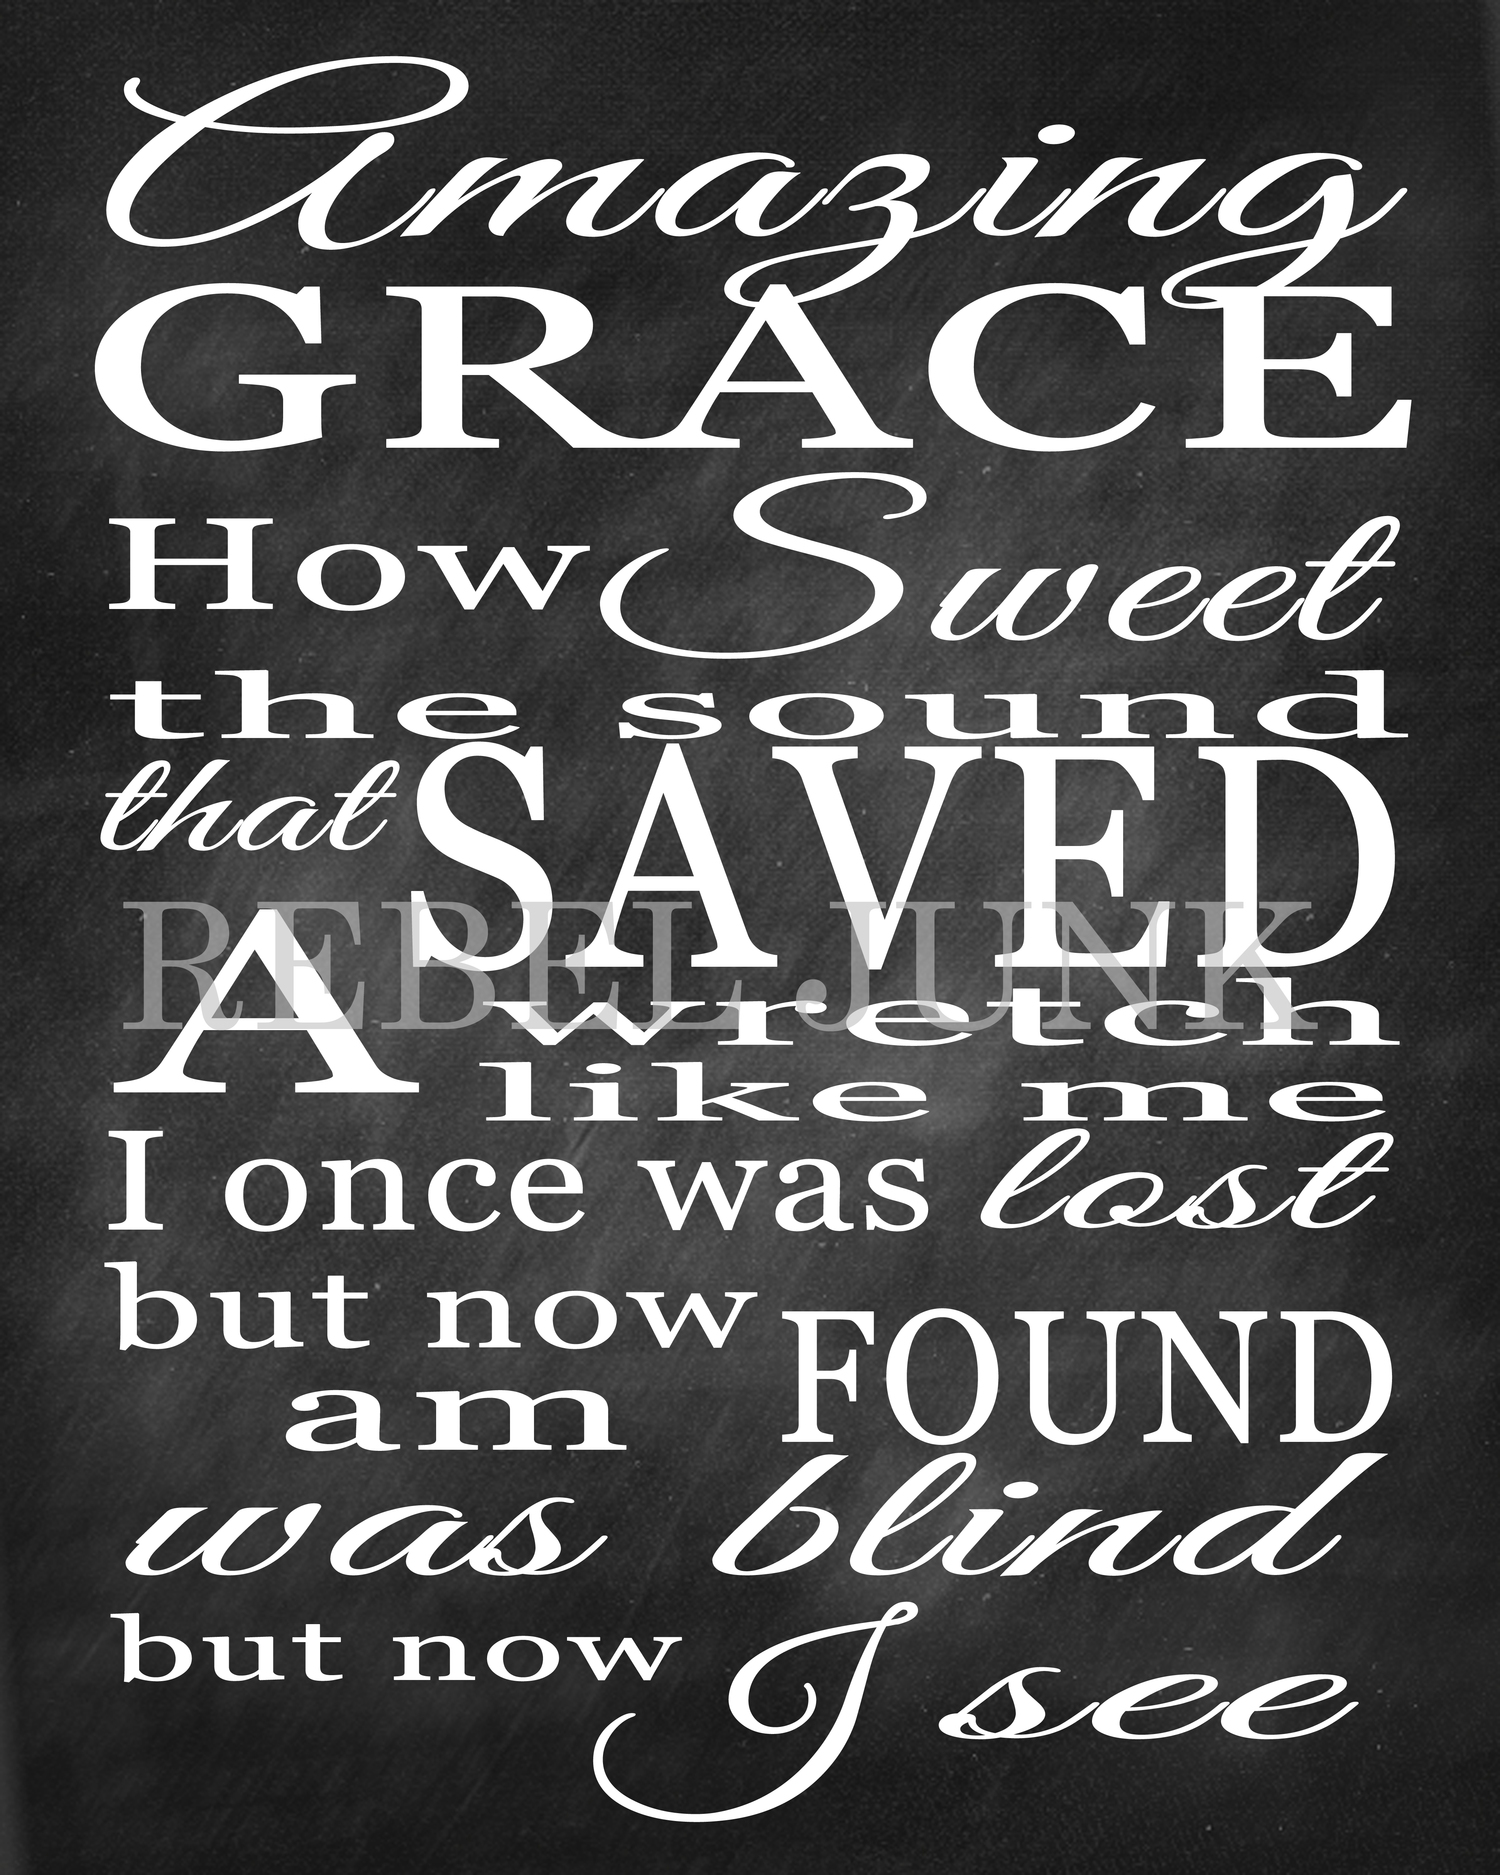 Amazing Grace Wall Art 8x10 printable art print, chalkboard style amazing grace quote